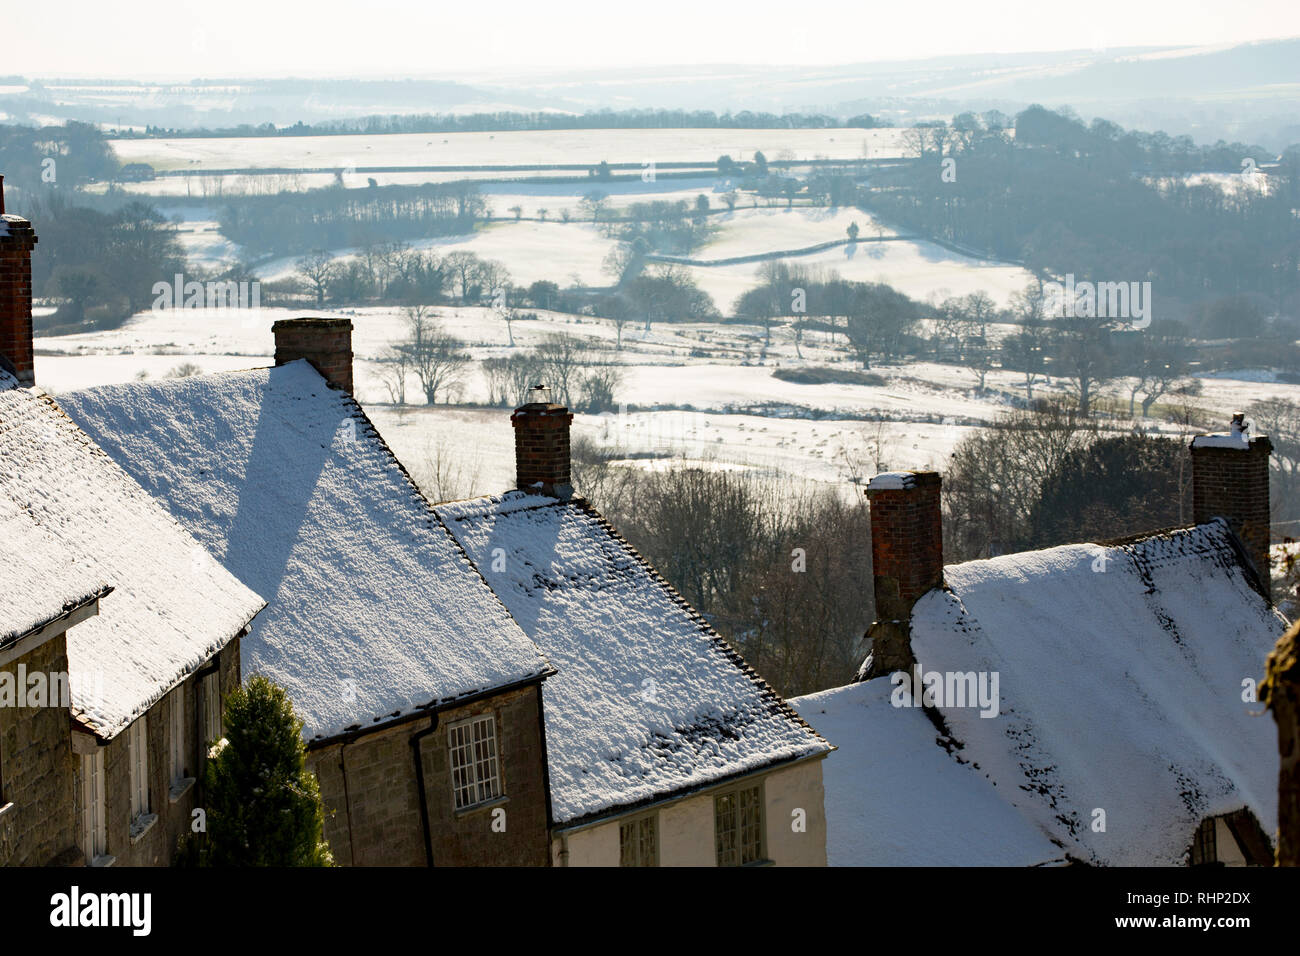 Snowy rooftops and chimneys of cottages  lining the famous Gold Hill against a backdrop of the Blackmore Vale. 2.2.2019. Shaftesbury North Dorset Engl - Stock Image